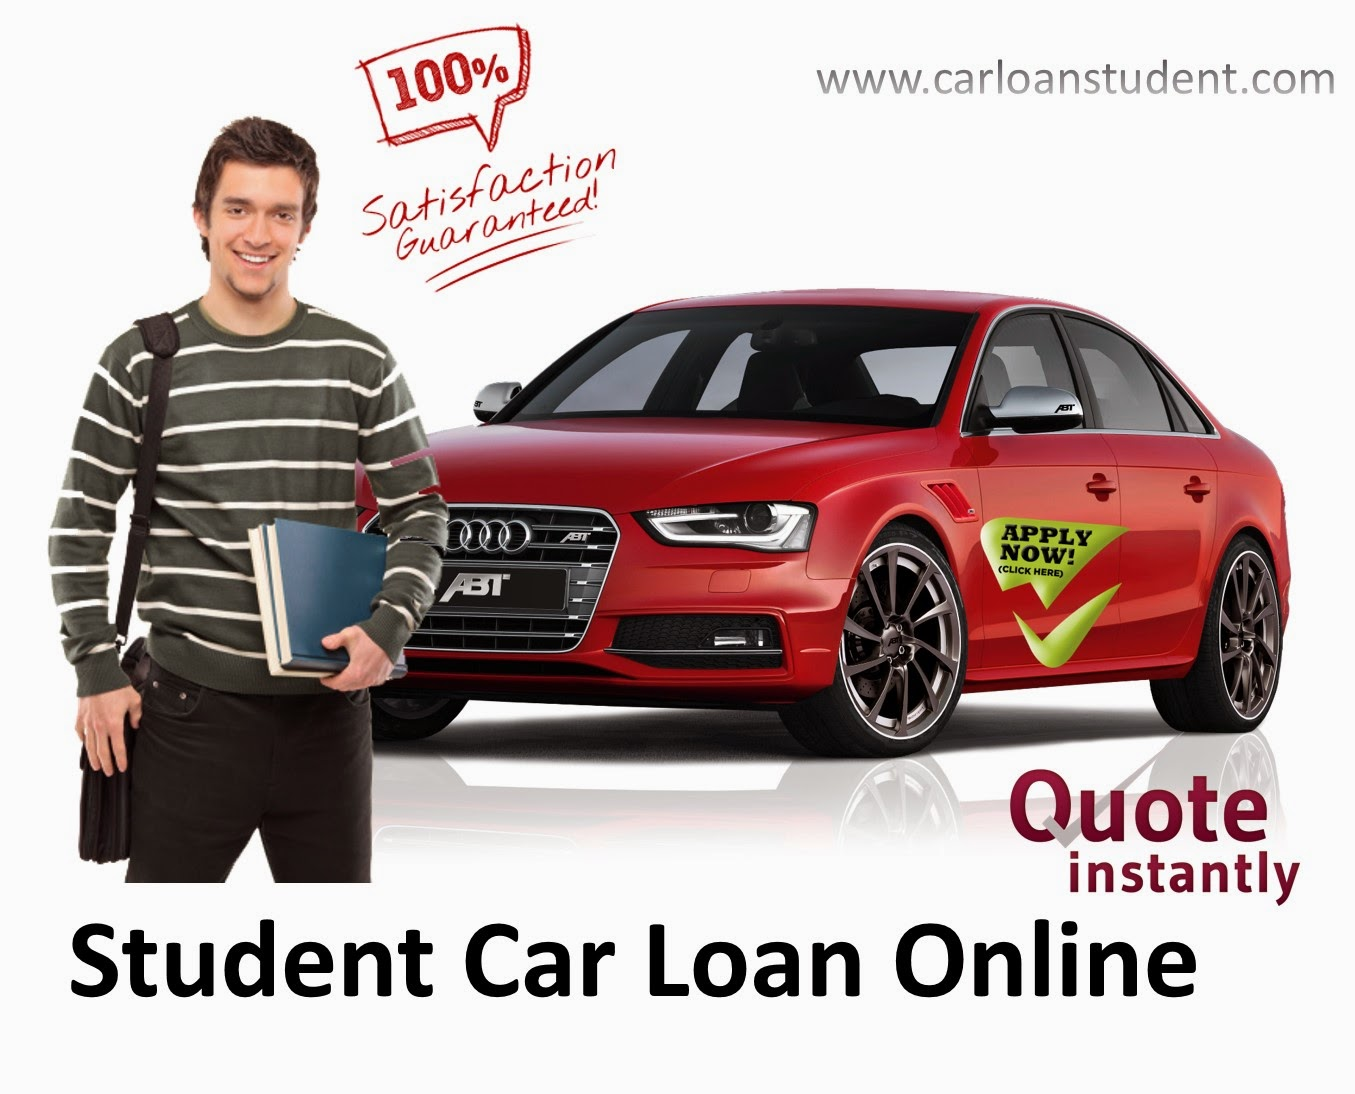 tips for getting a student car loan online with the best cheap interest rates helping student. Black Bedroom Furniture Sets. Home Design Ideas